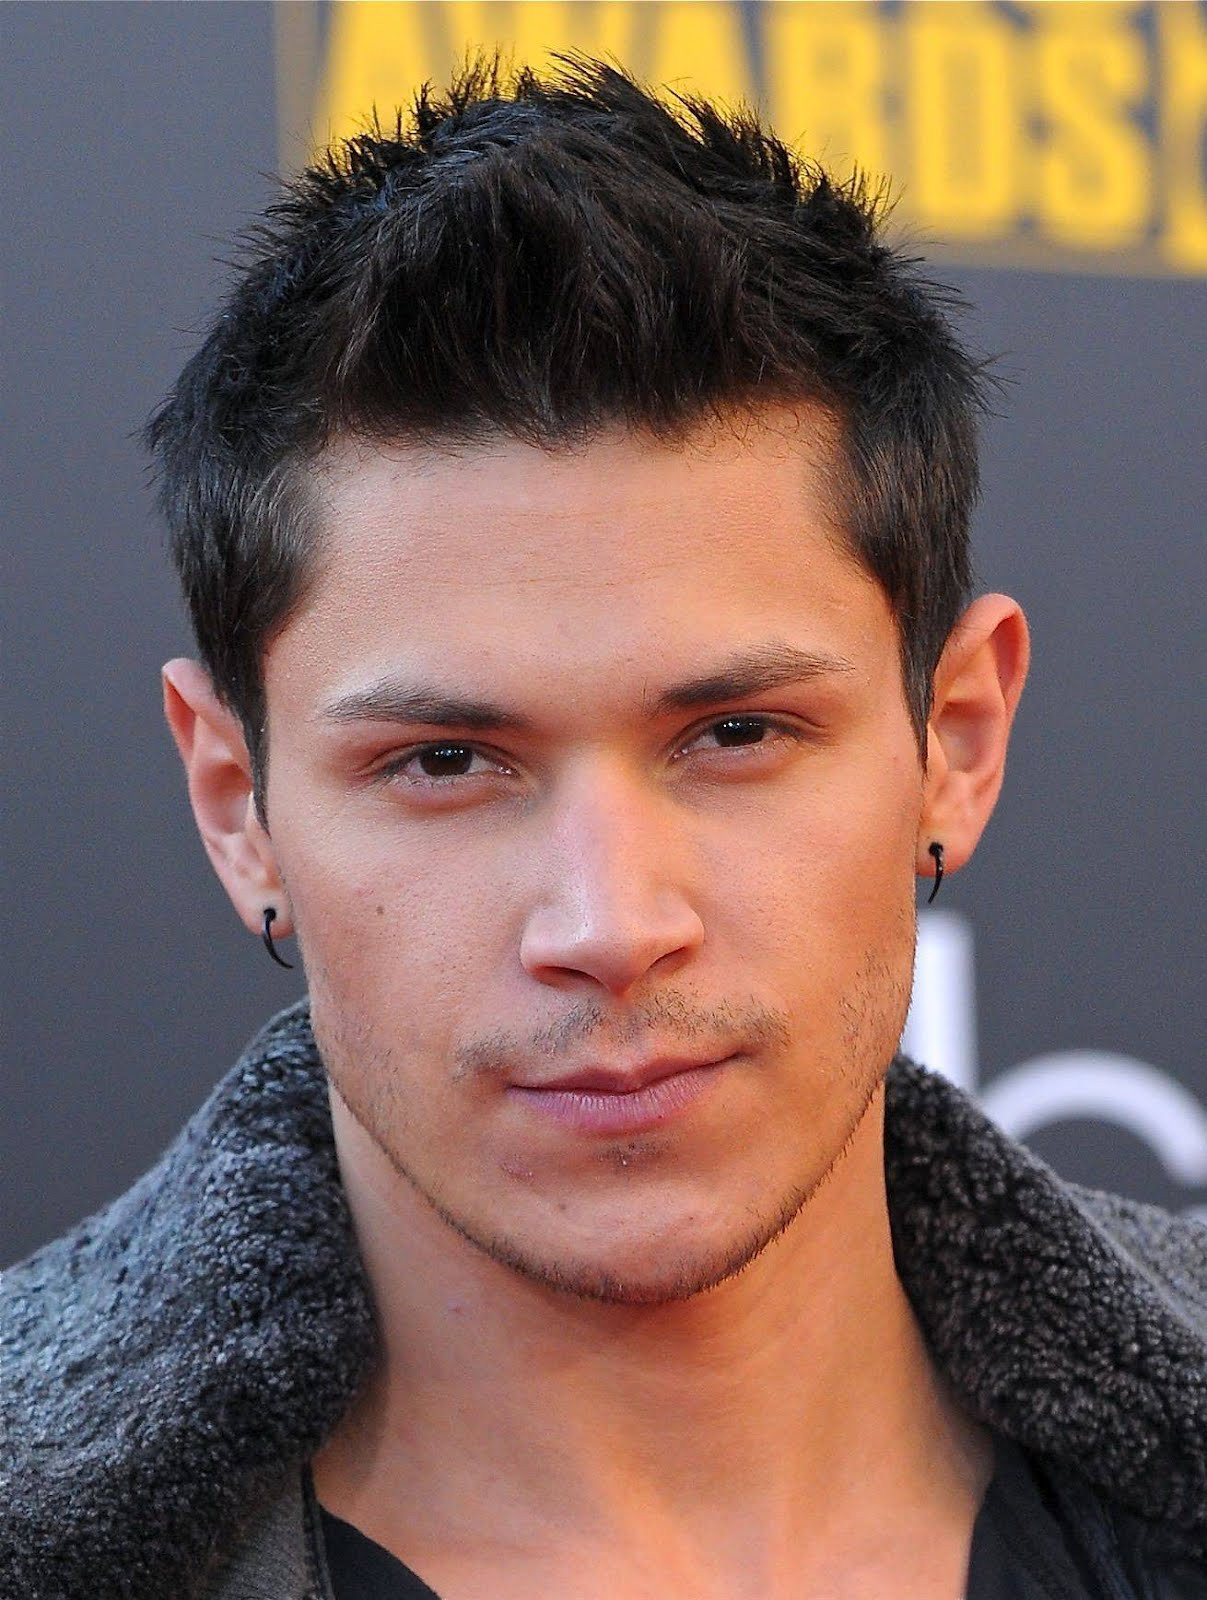 Best ideas about Popular Haircuts For Boys . Save or Pin 25 Best Short Spiky Haircuts For Guys Now.